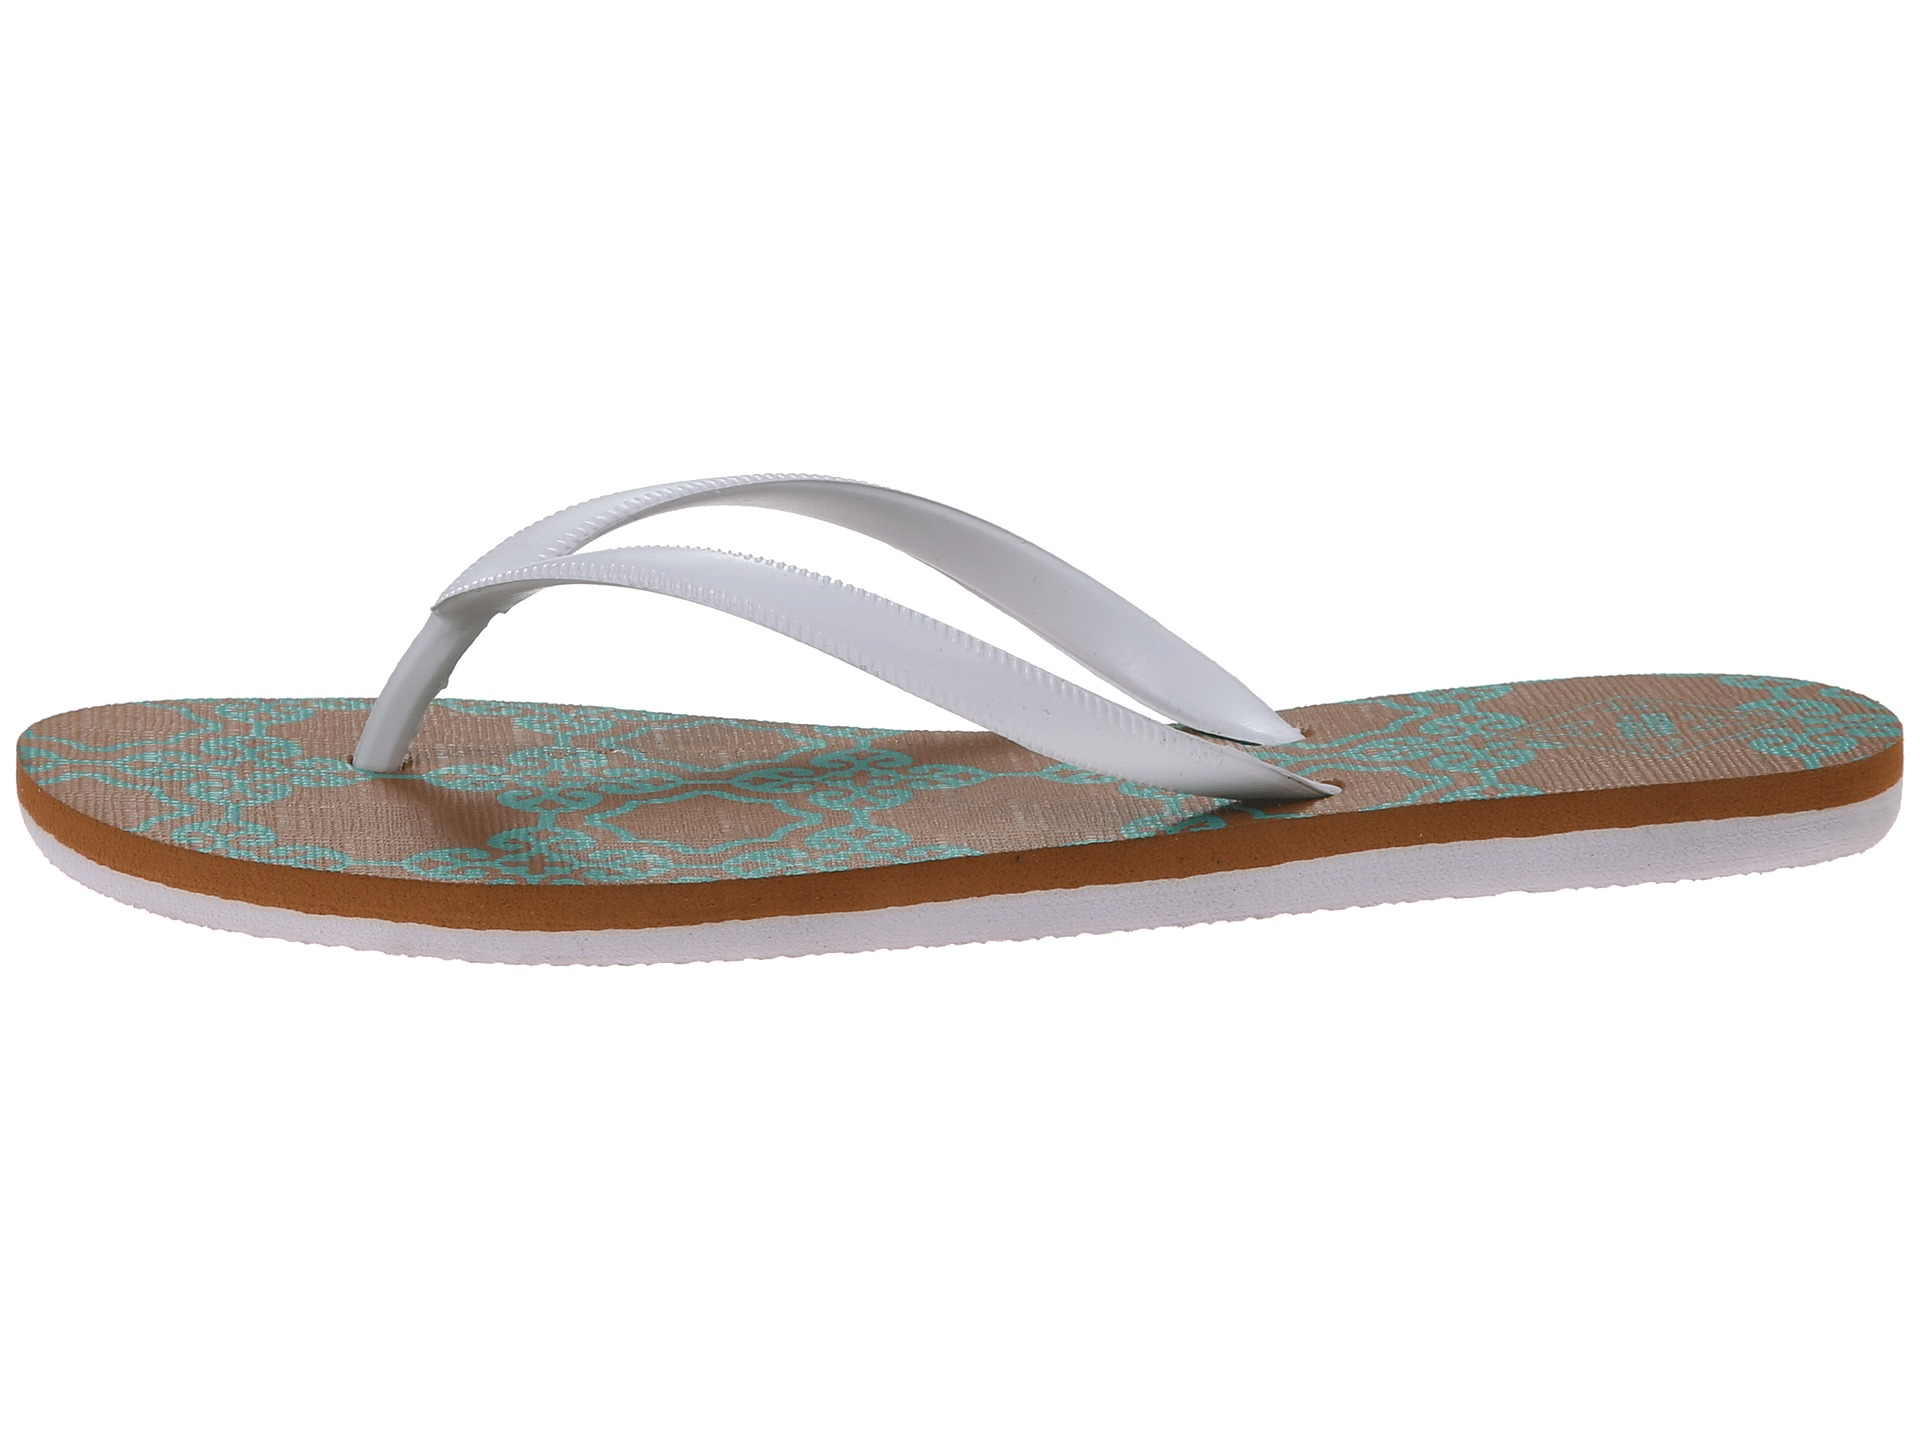 Freewaters NEW White Tropea Print Shoes Size 11M Flip Flops $97- #964 SALE